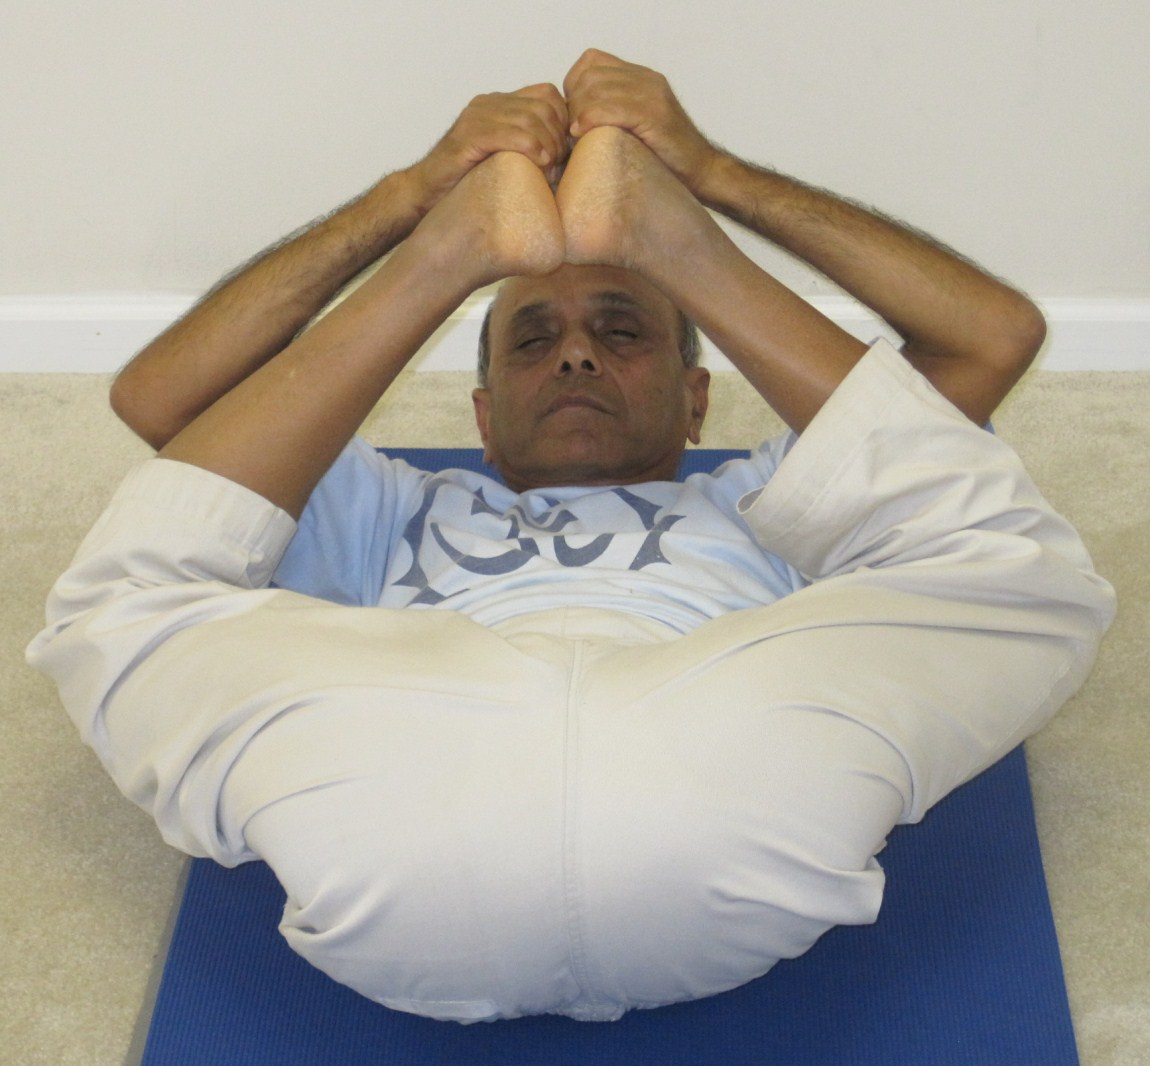 Reclining Hip Opening Poses, part 2 | Yoga With Subhash